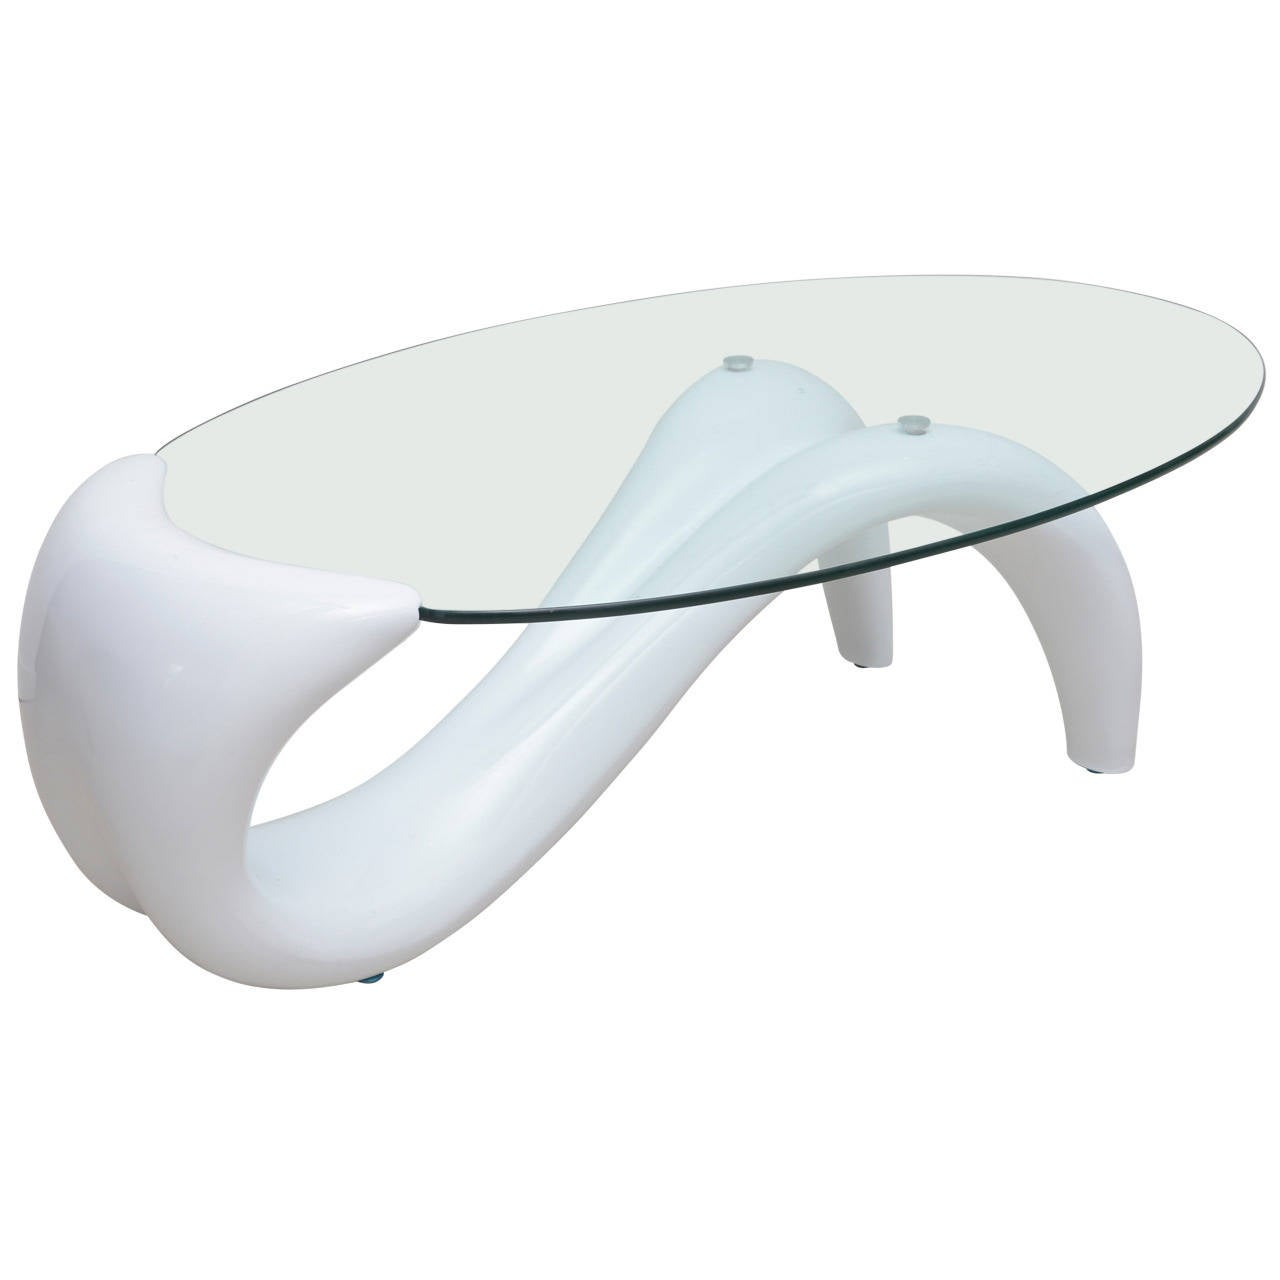 Chic Late 20th Century Minimalist Coffee Table With Oval Glass Top At 1stdibs